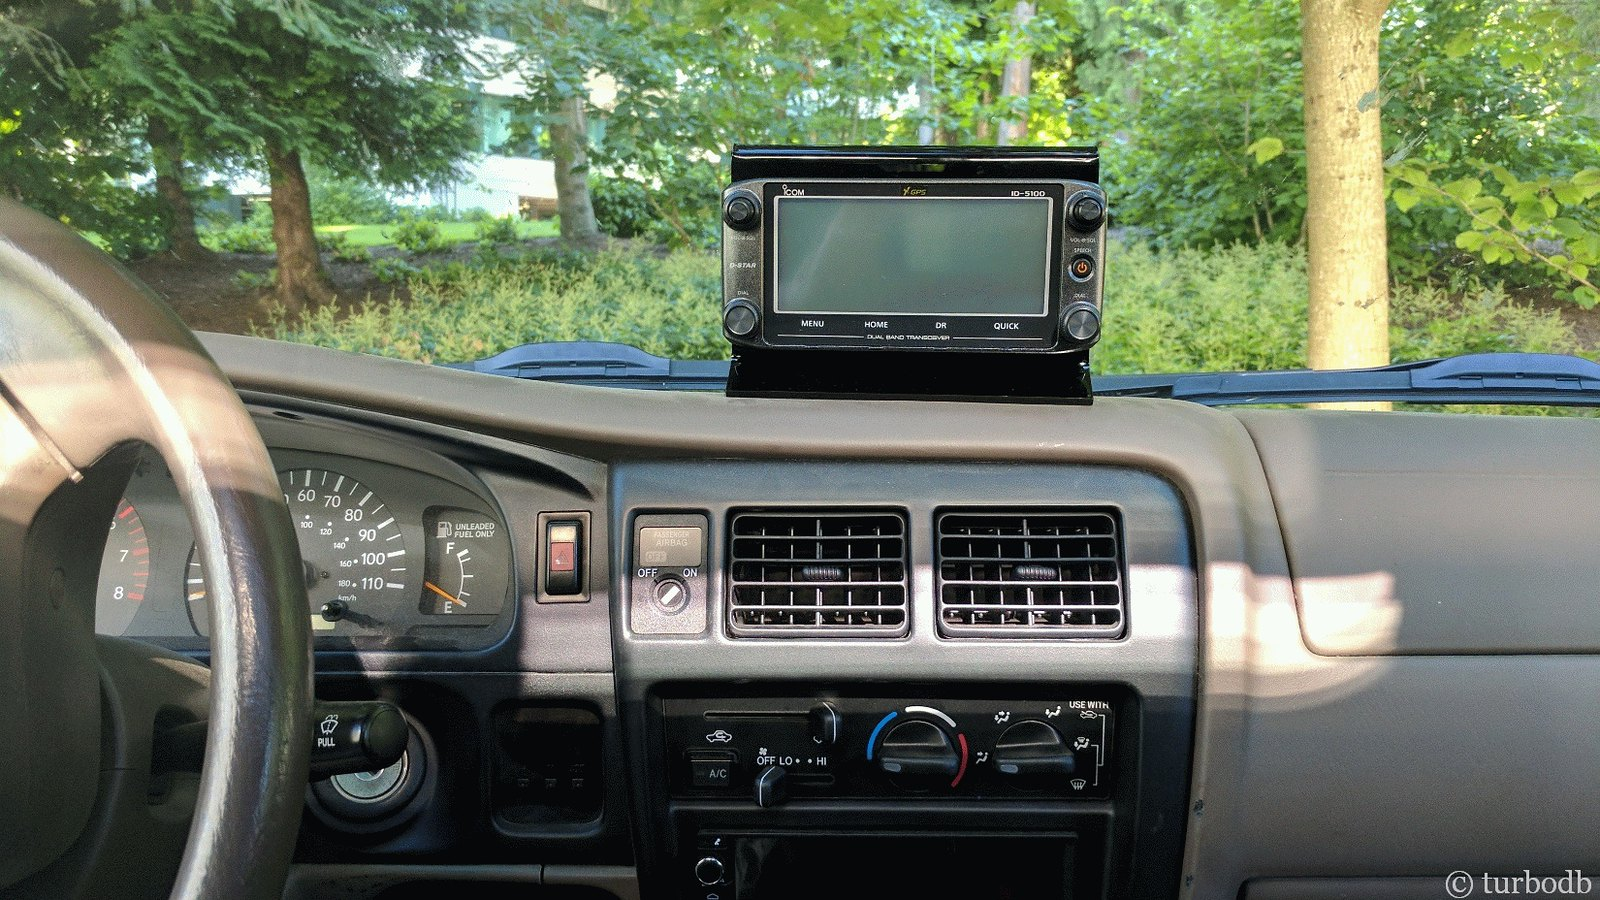 Icom 5100A Install (OMG, did I just drill a hole in the roof of my truck?)